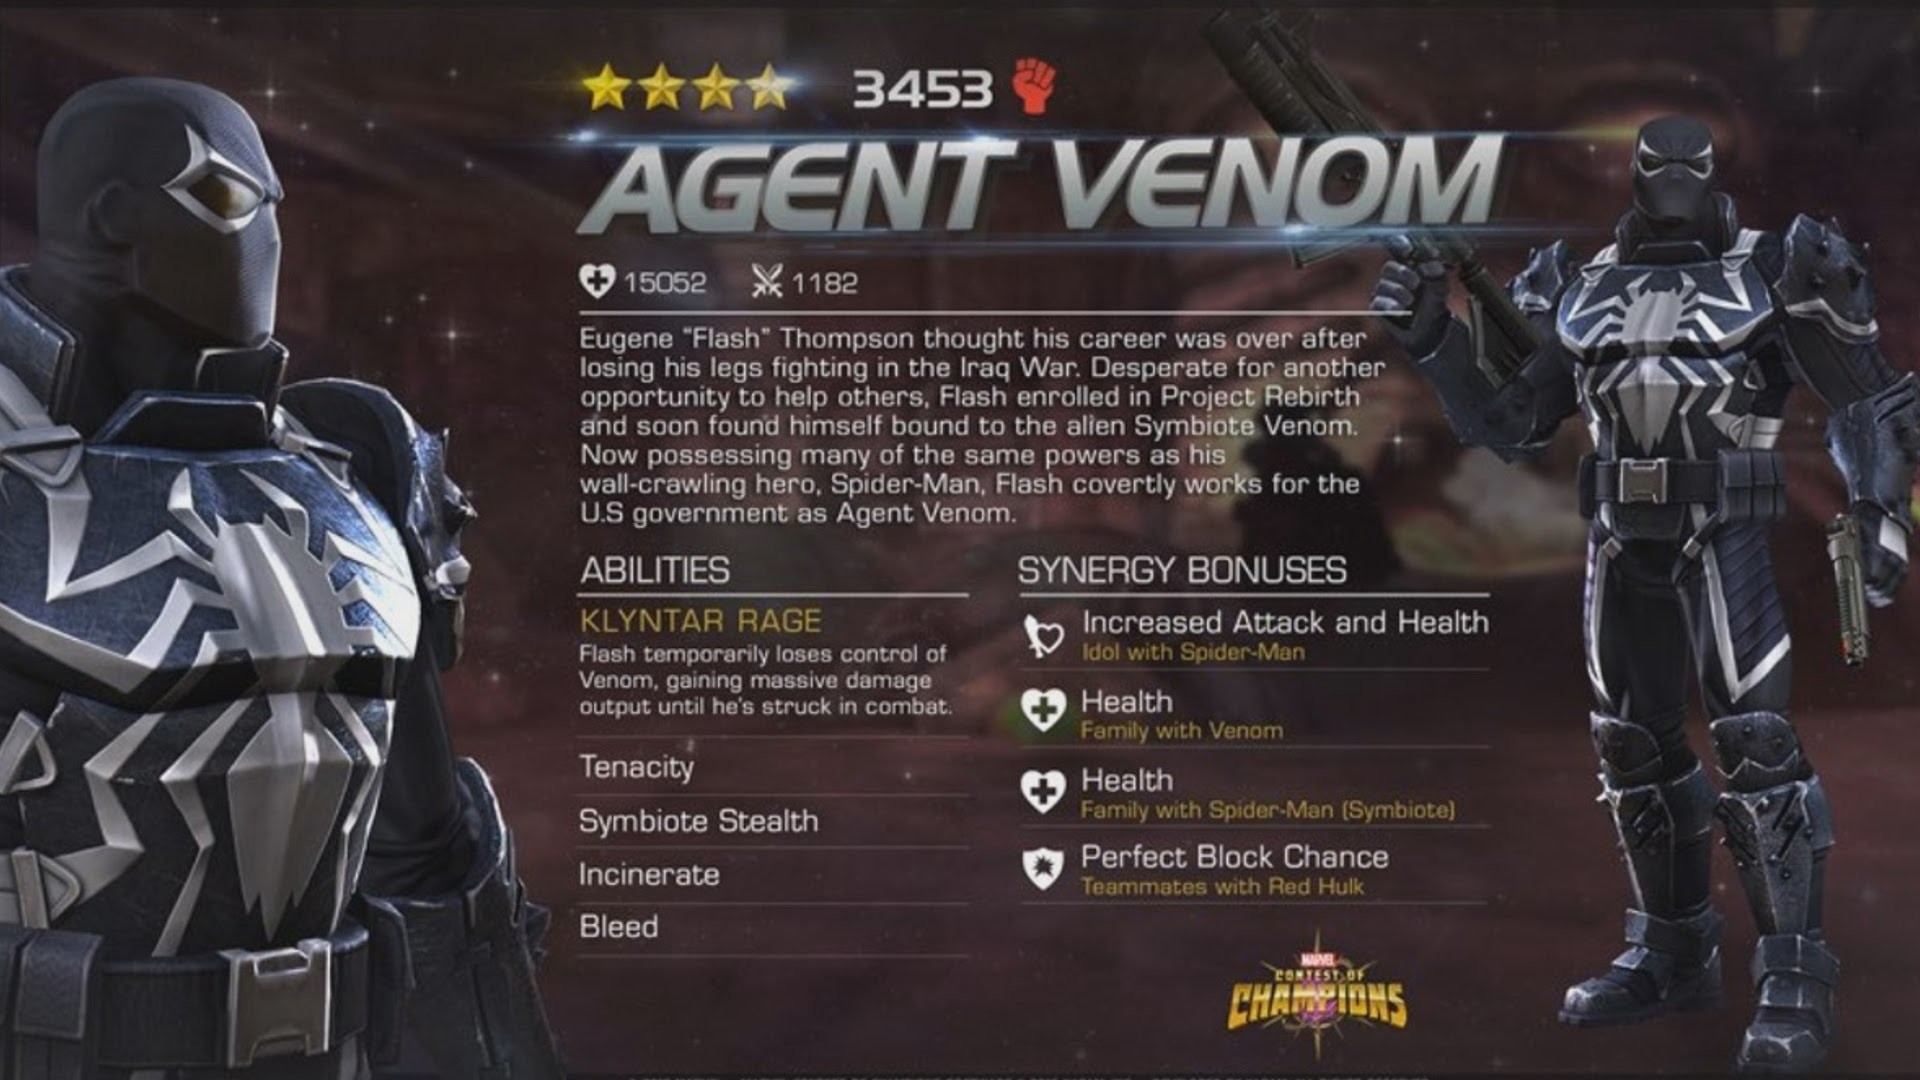 Hd Agent Venom Wallpaper 73 Images